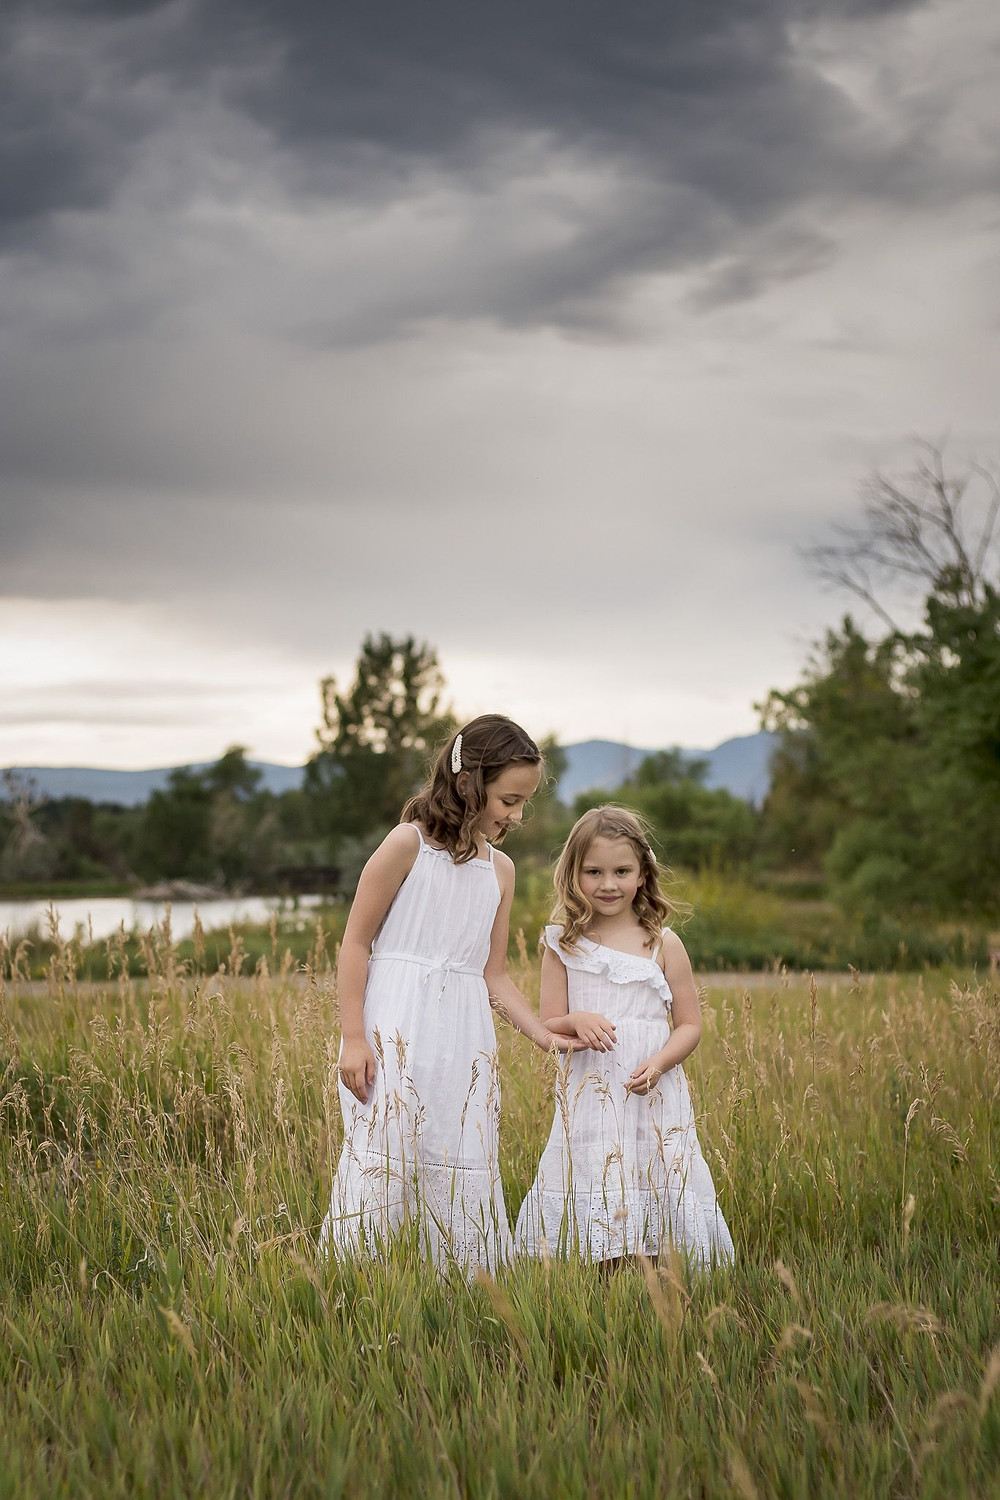 Sisters hold hands under cloudy sky, Lakewood, Colorado